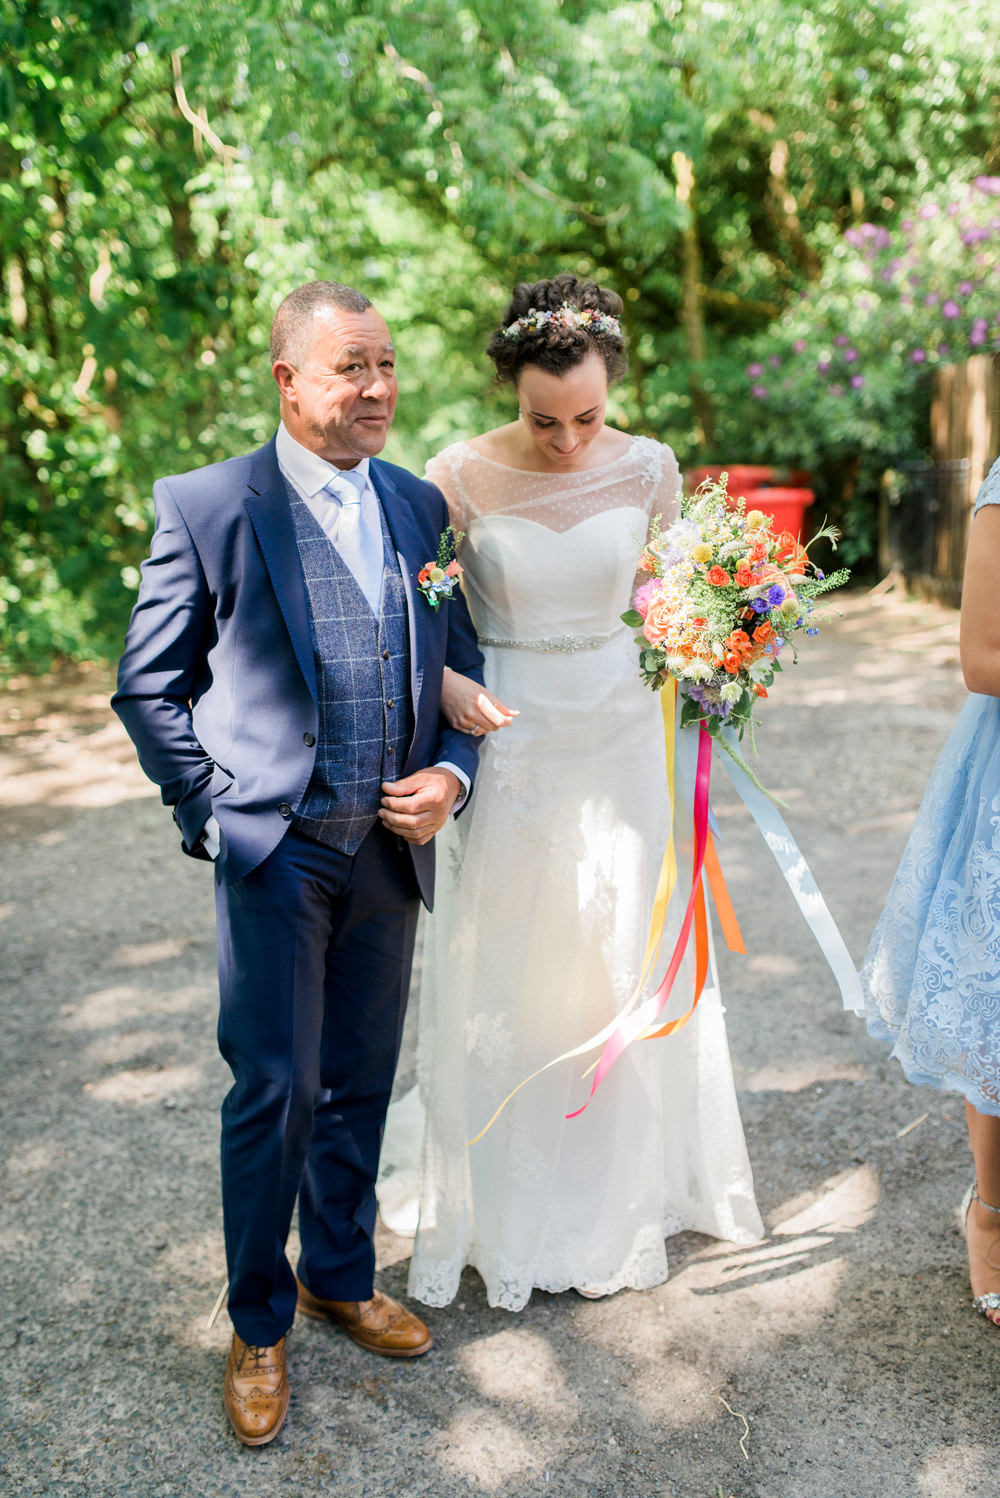 Bride Bridal Strapless Sweetheart Neckline Lace Jacket Sleeves Waistcoat Tweed Check Three Piece Suit Blue Multicoloured Bouquet Ribbon Spring Cottage Rivington Wedding Emma B Photography